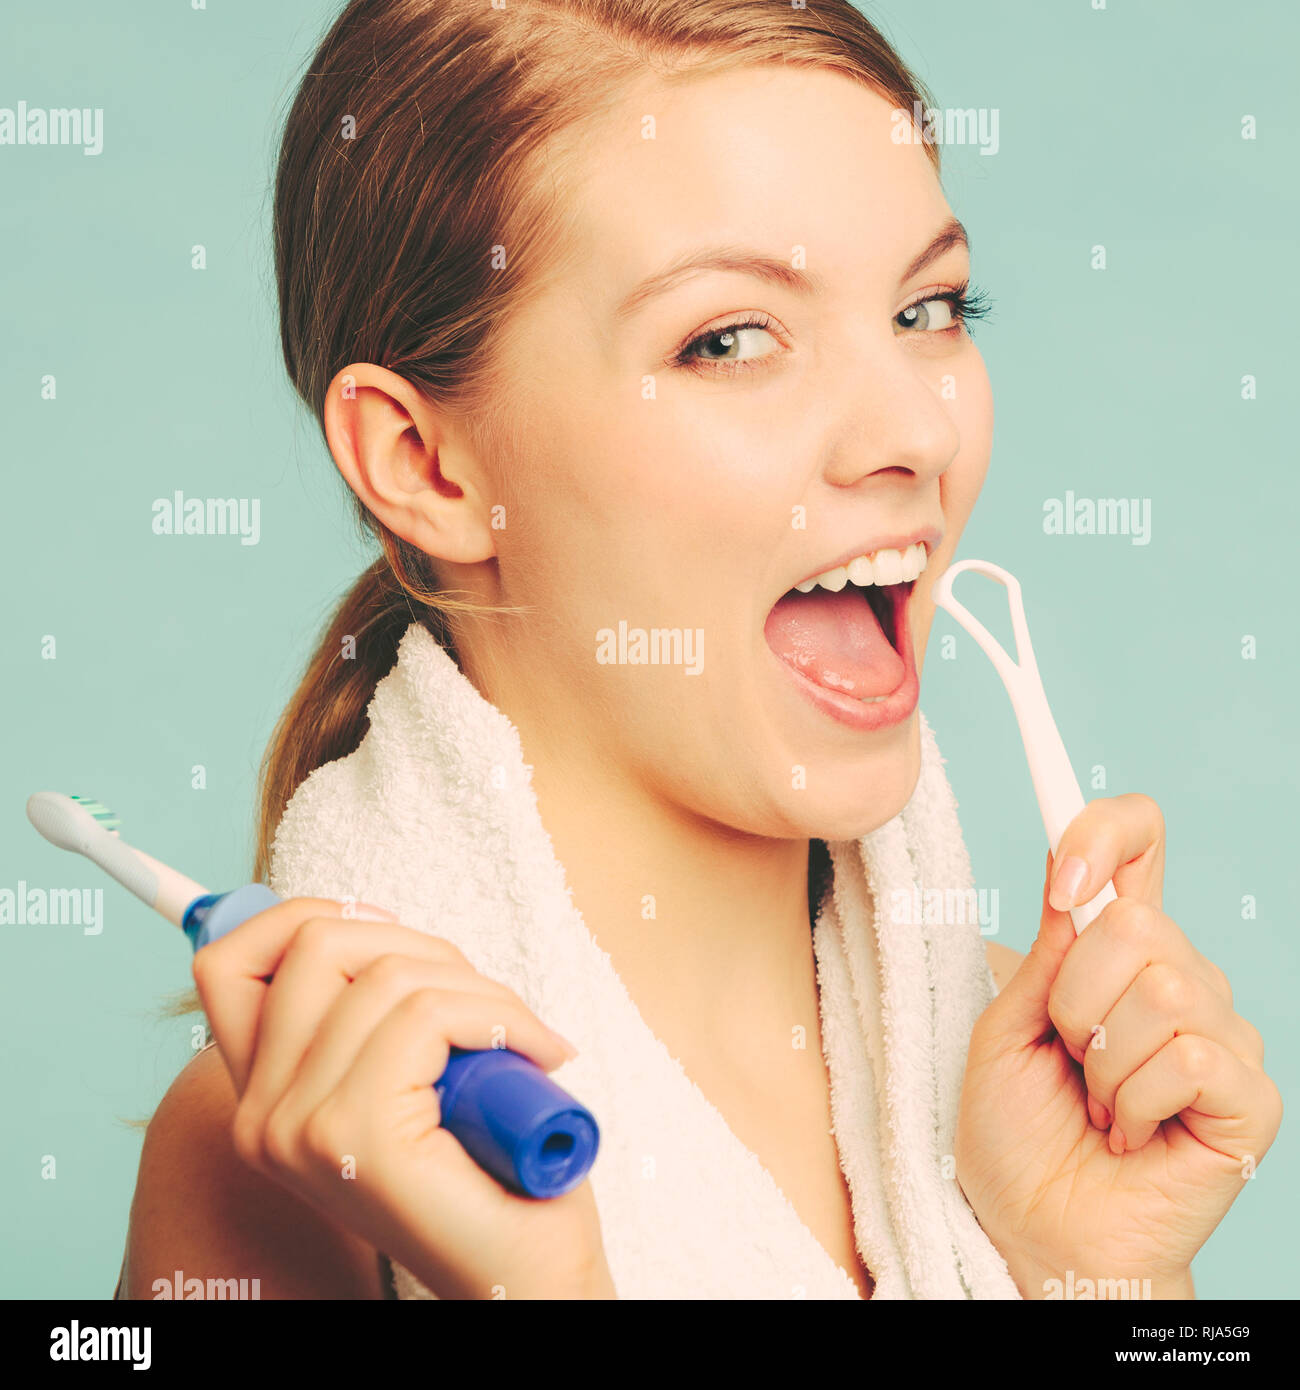 Other Kitchen, Dining, Bar Cleaning The Oral Cavity.